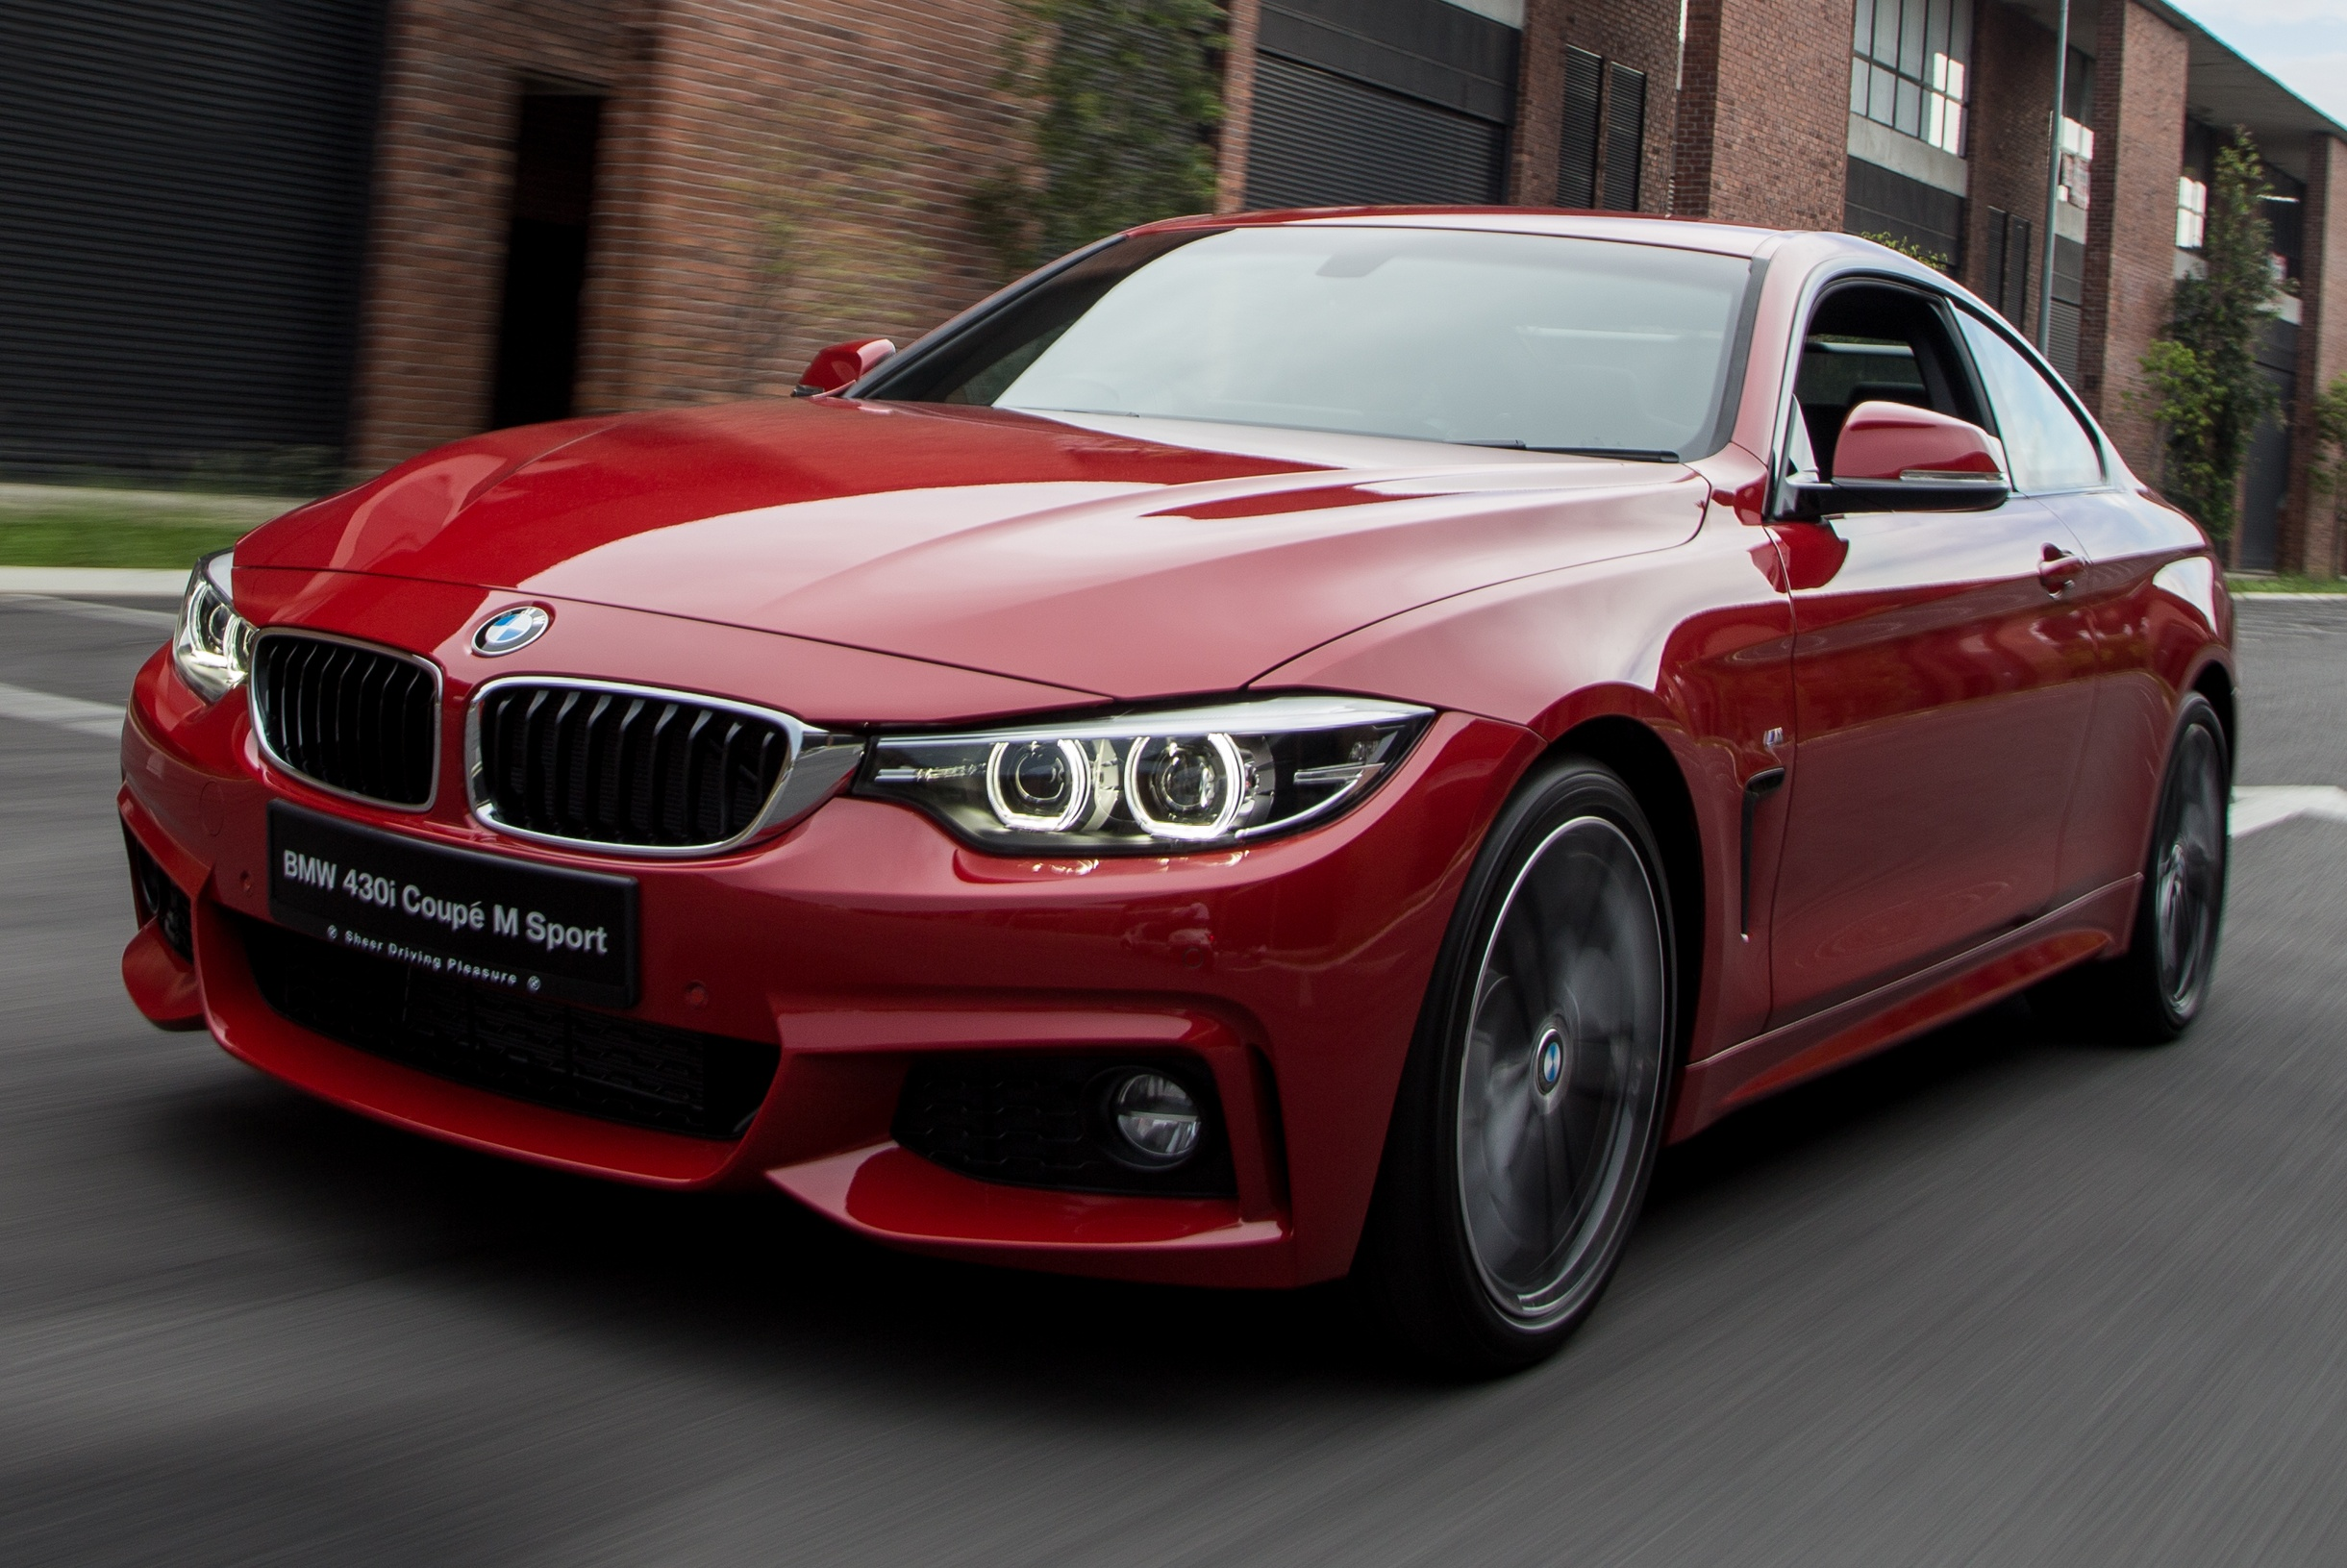 Bmw 4 Series Coupe Lci Now On Sale In Malaysia 420i